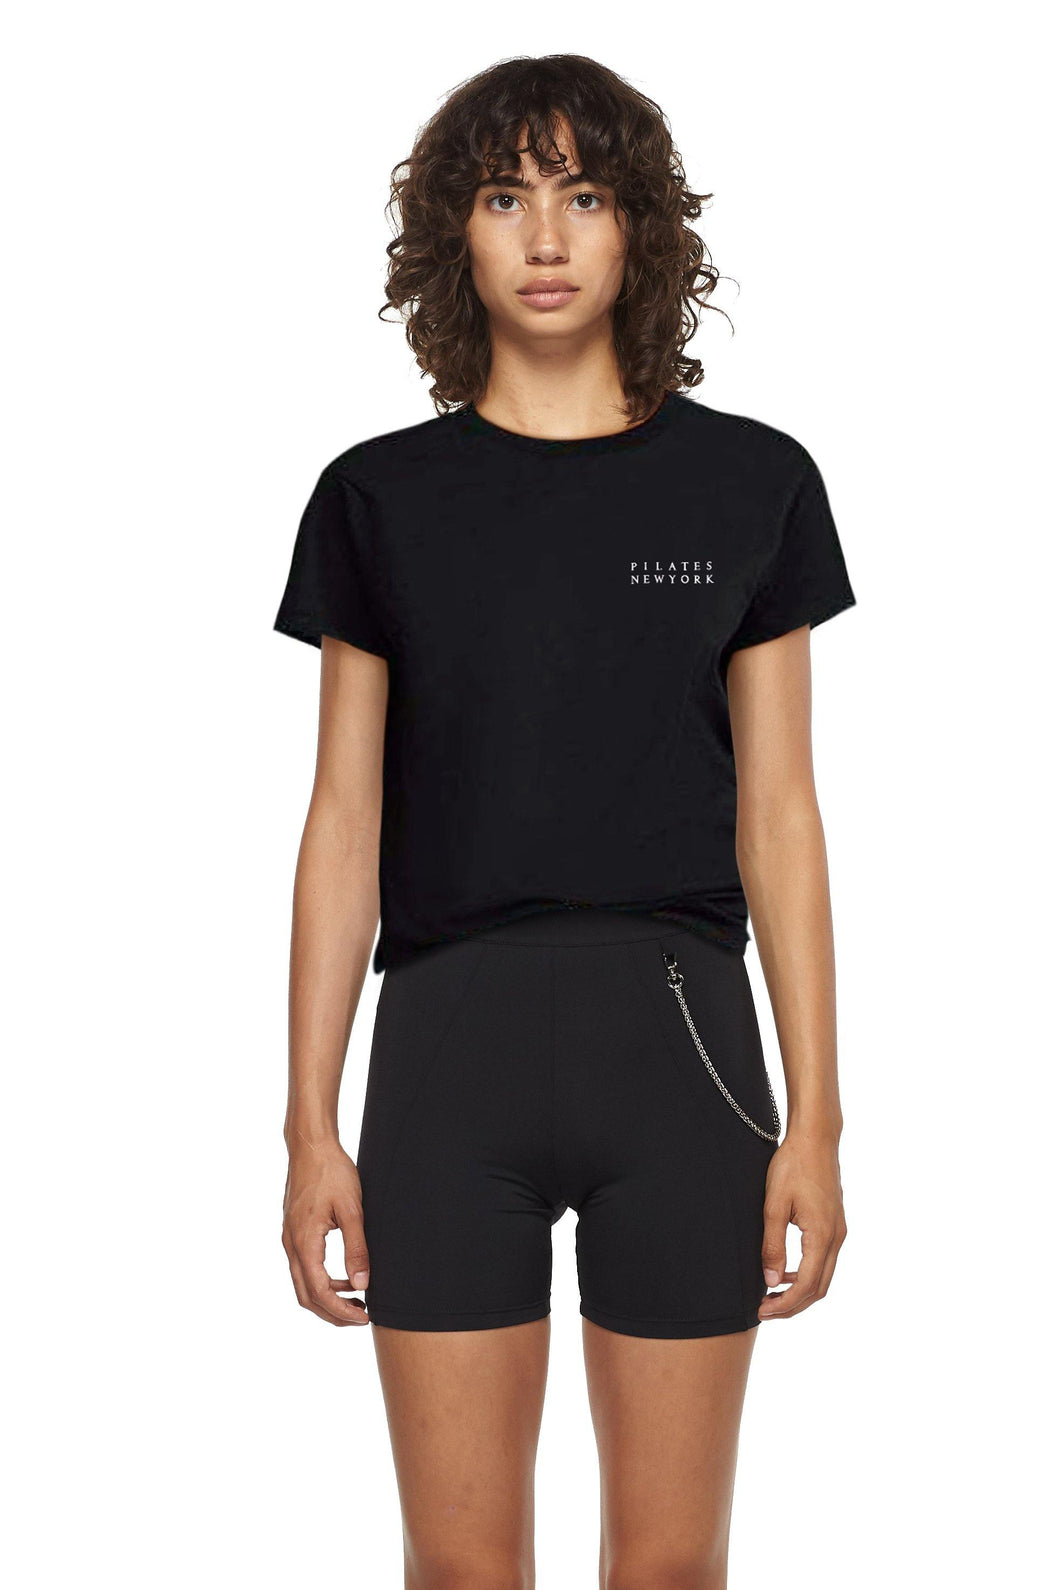 Pilates New York Tee